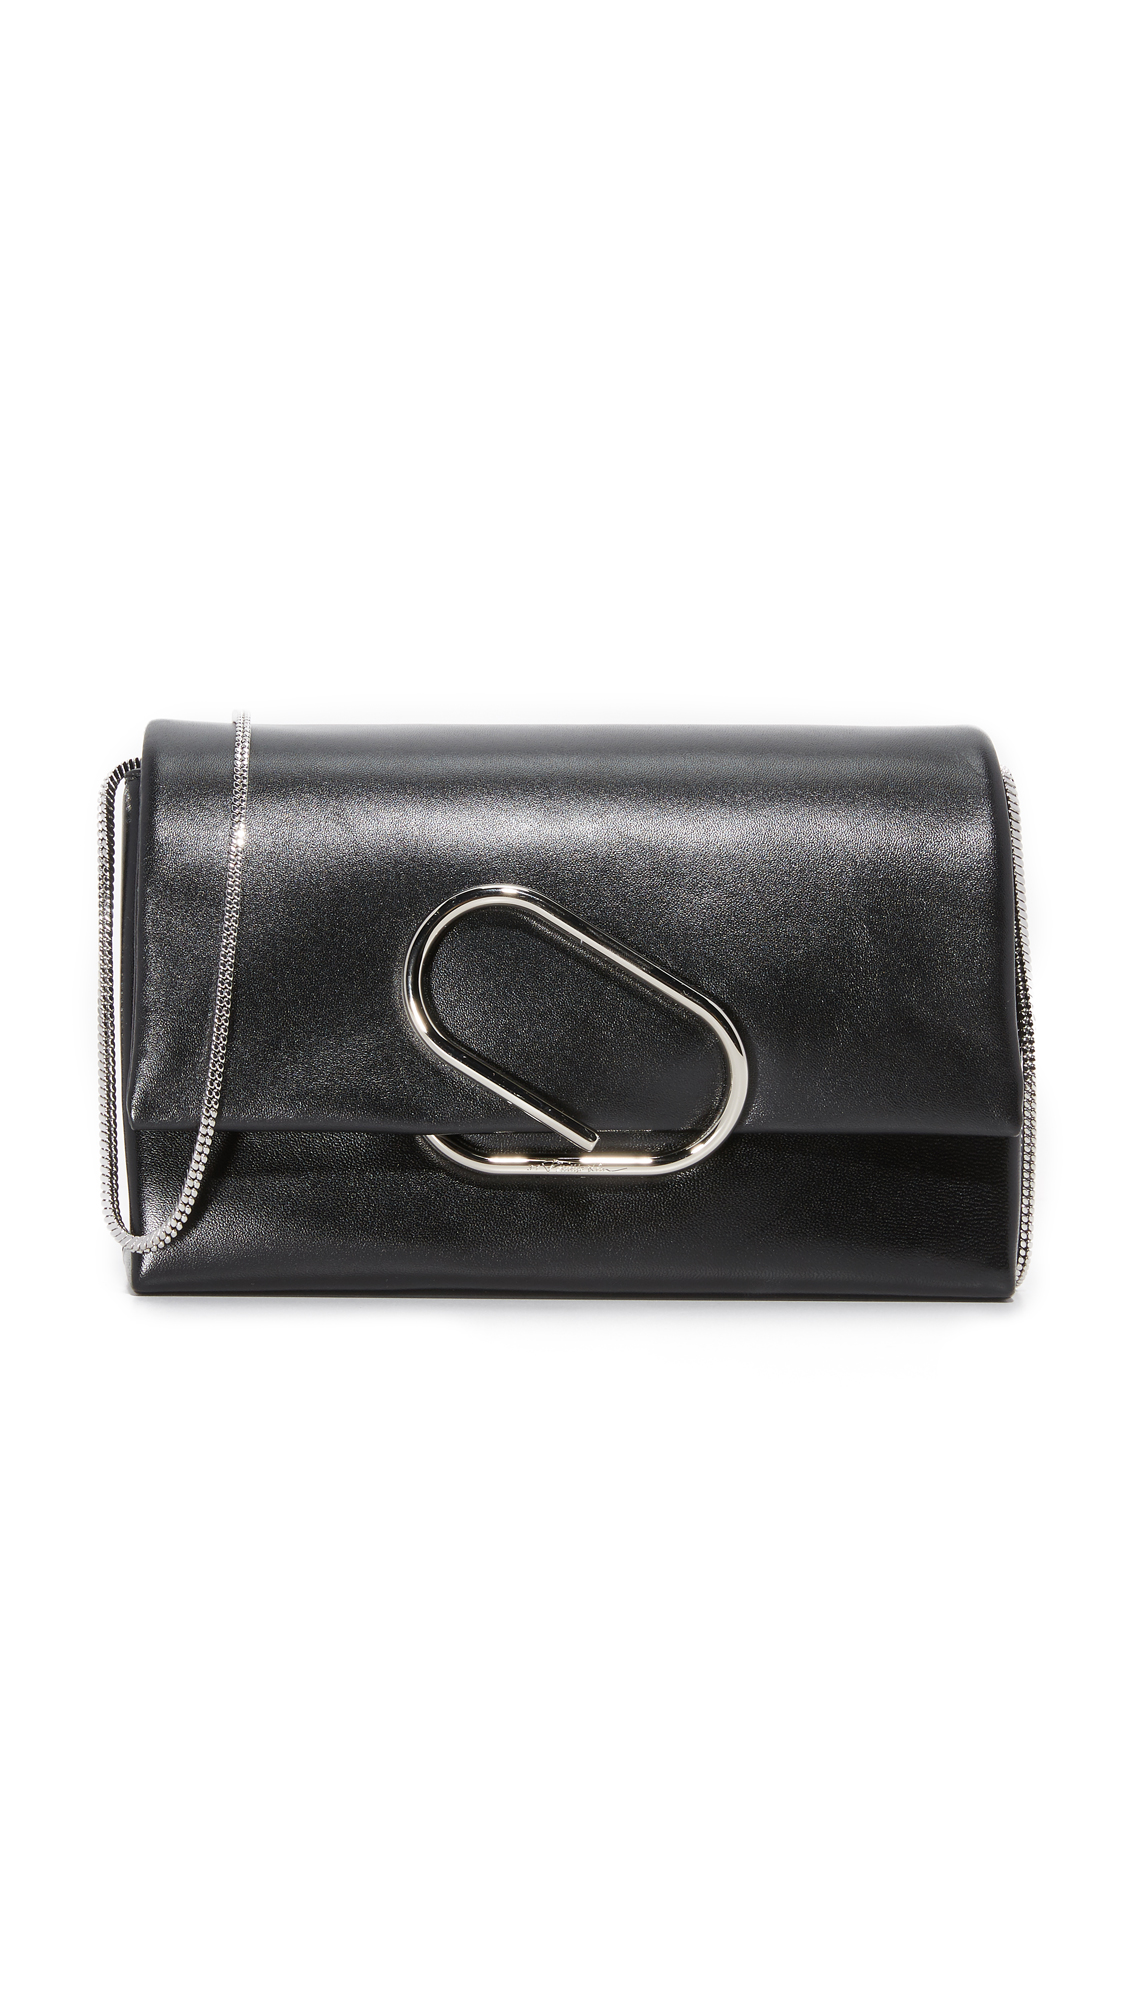 3.1 Phillip Lim Alix Flap Shoulder Bag - Black